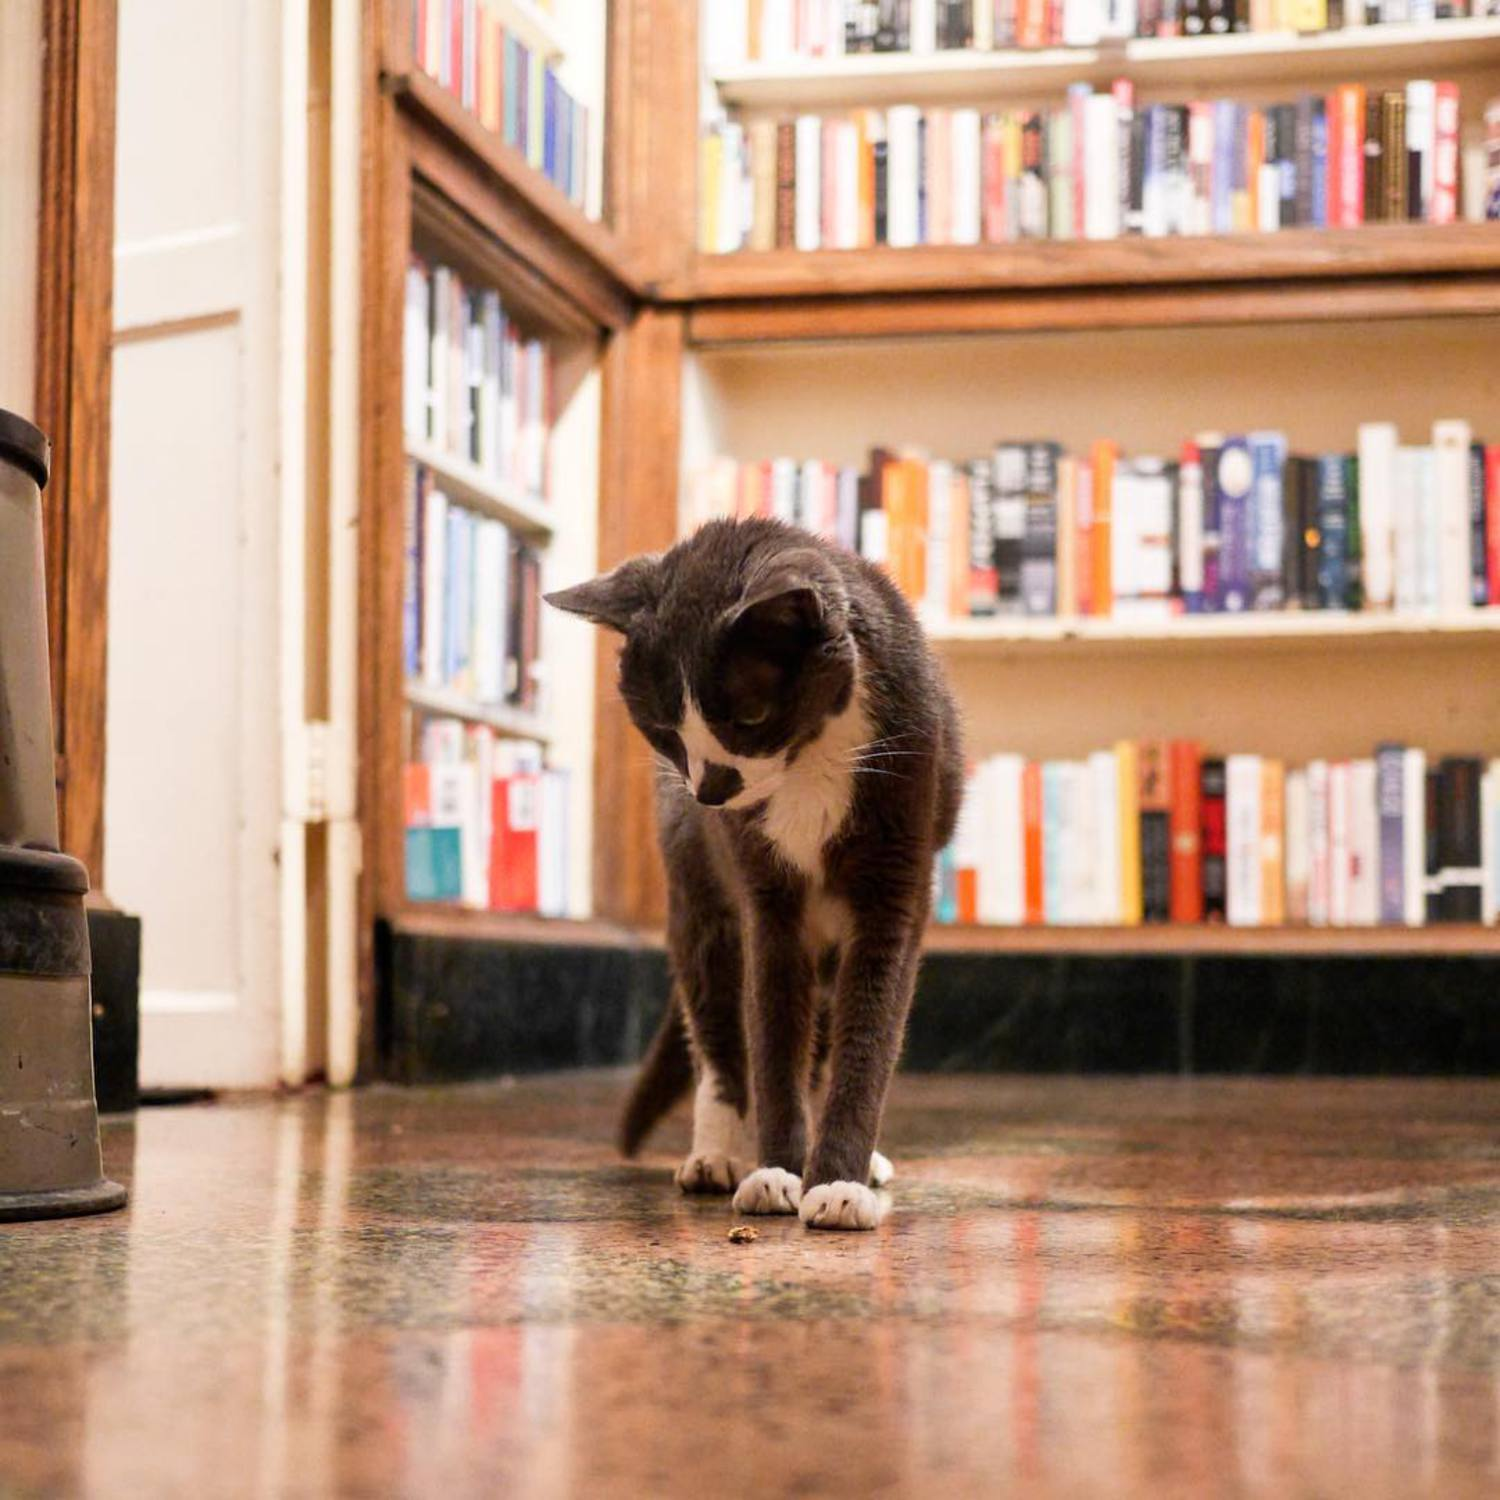 """I understand the offering, but to assume that I'm going to start answering your questions just because you put a treat in front of me is a bit naive. If you want me to warm up to you, I suggest you completely ignore me."" - Hampton, Upper East Side (The Corner Book Store)"